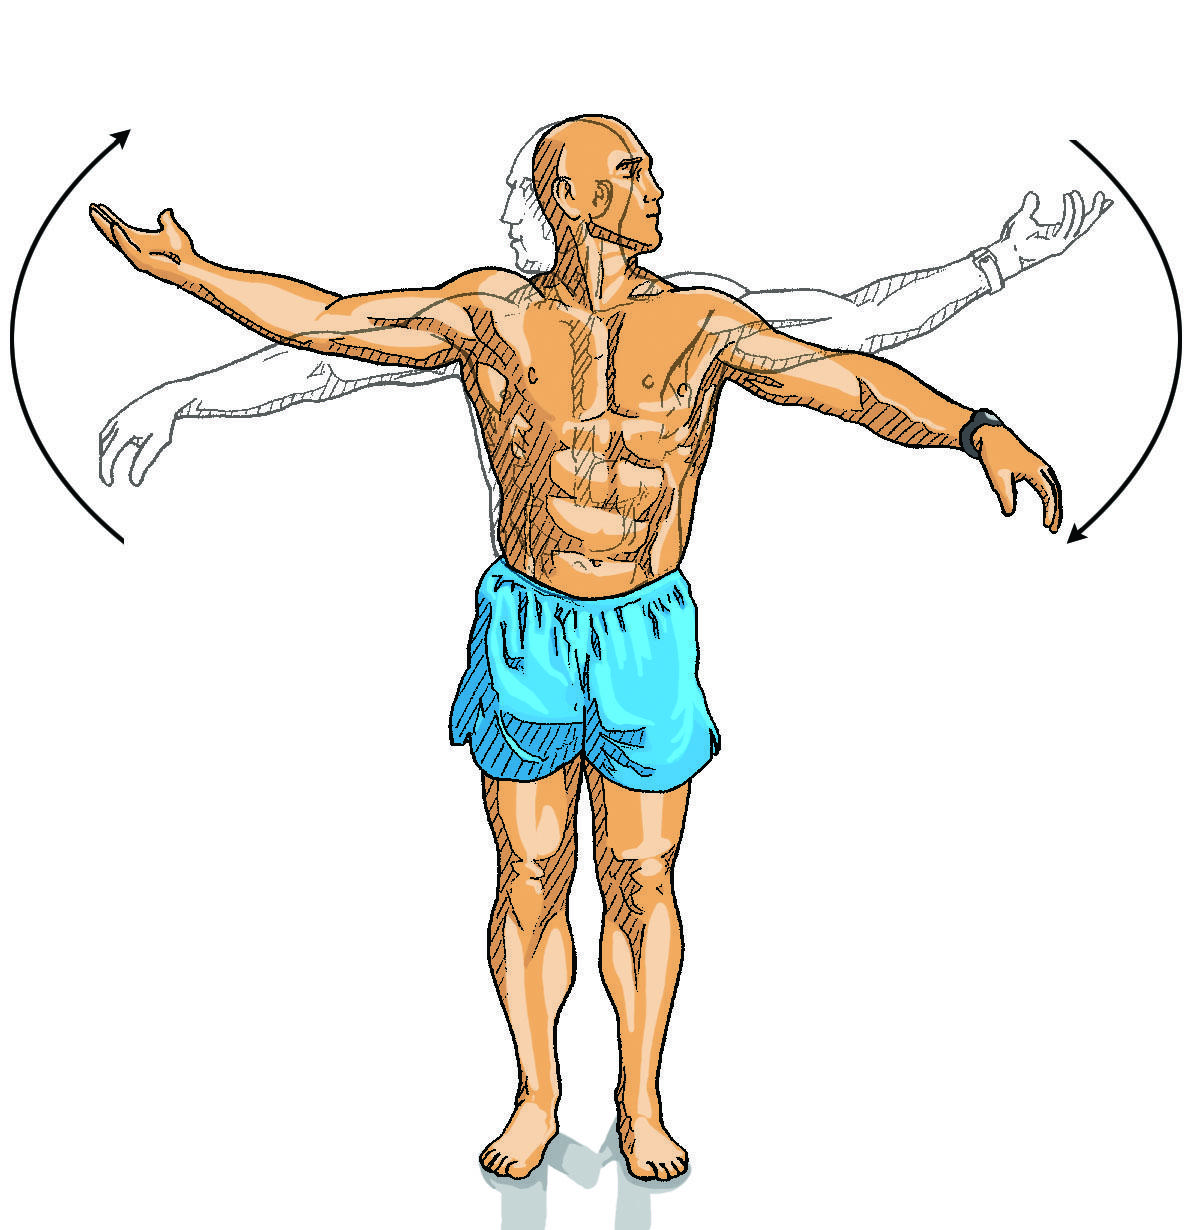 CHEK Thoracic Mobilizations